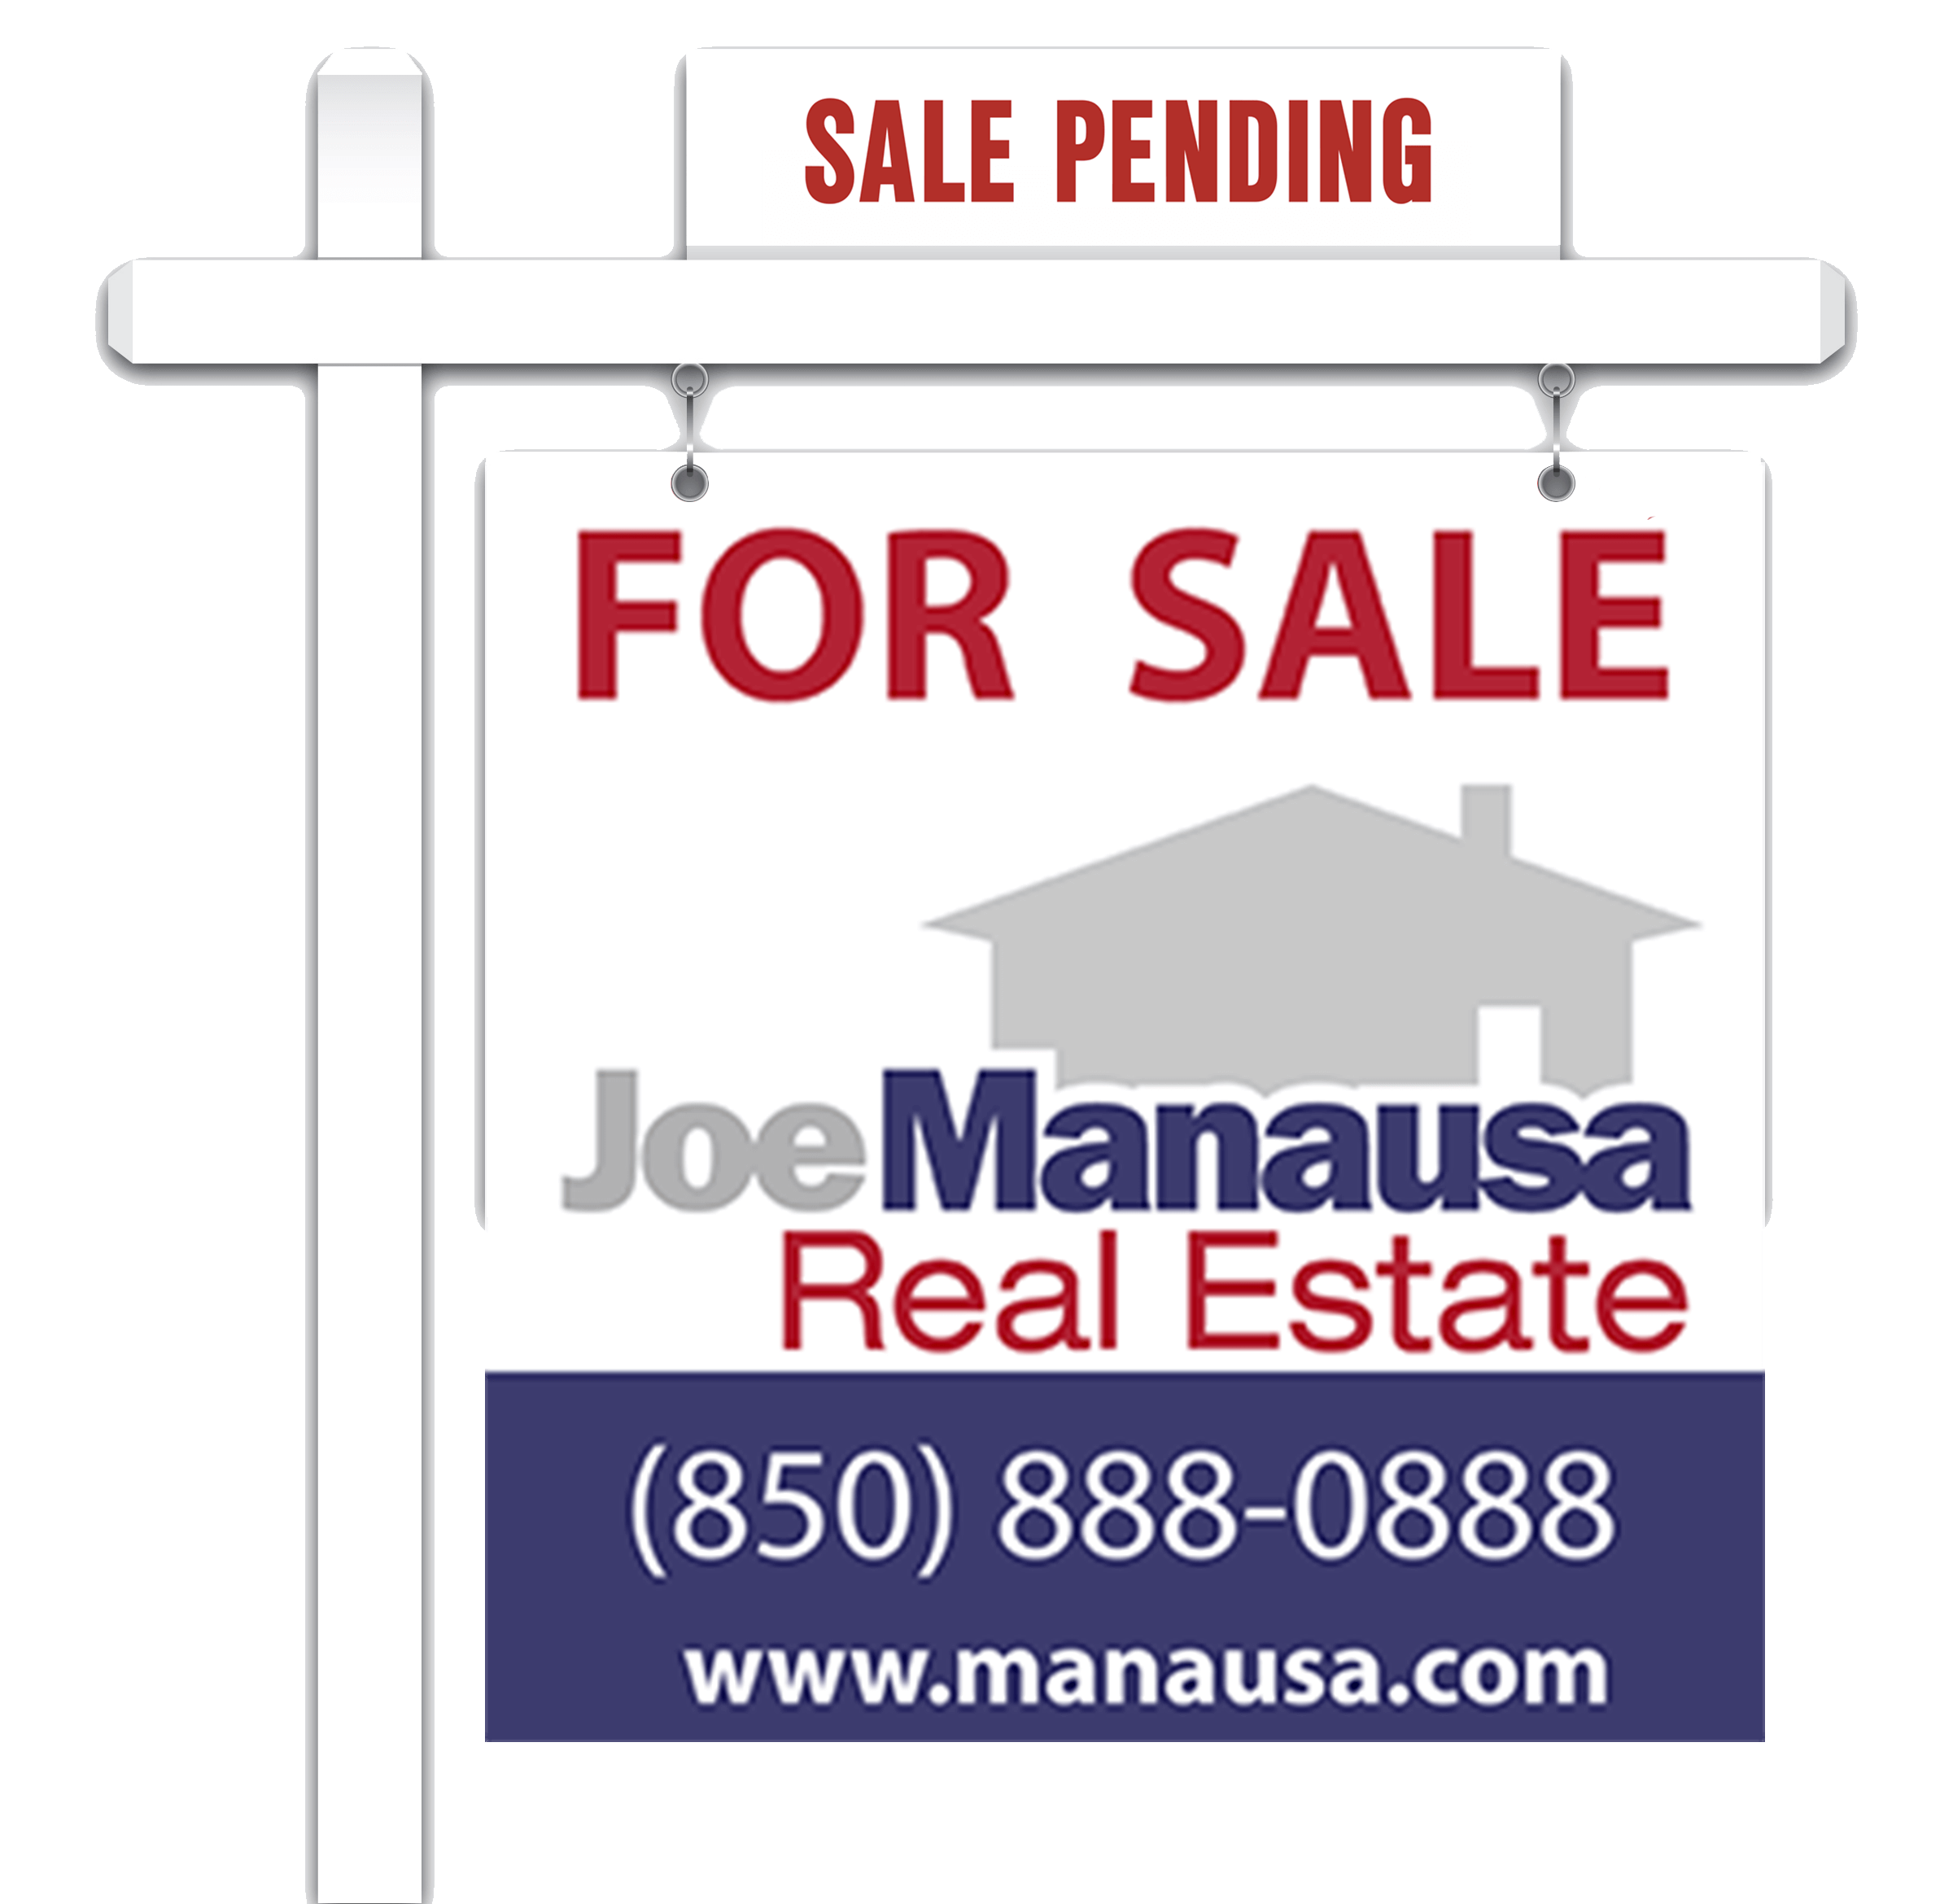 Joe Manausa Real Estate For Sale Sign In Tallahassee, FL